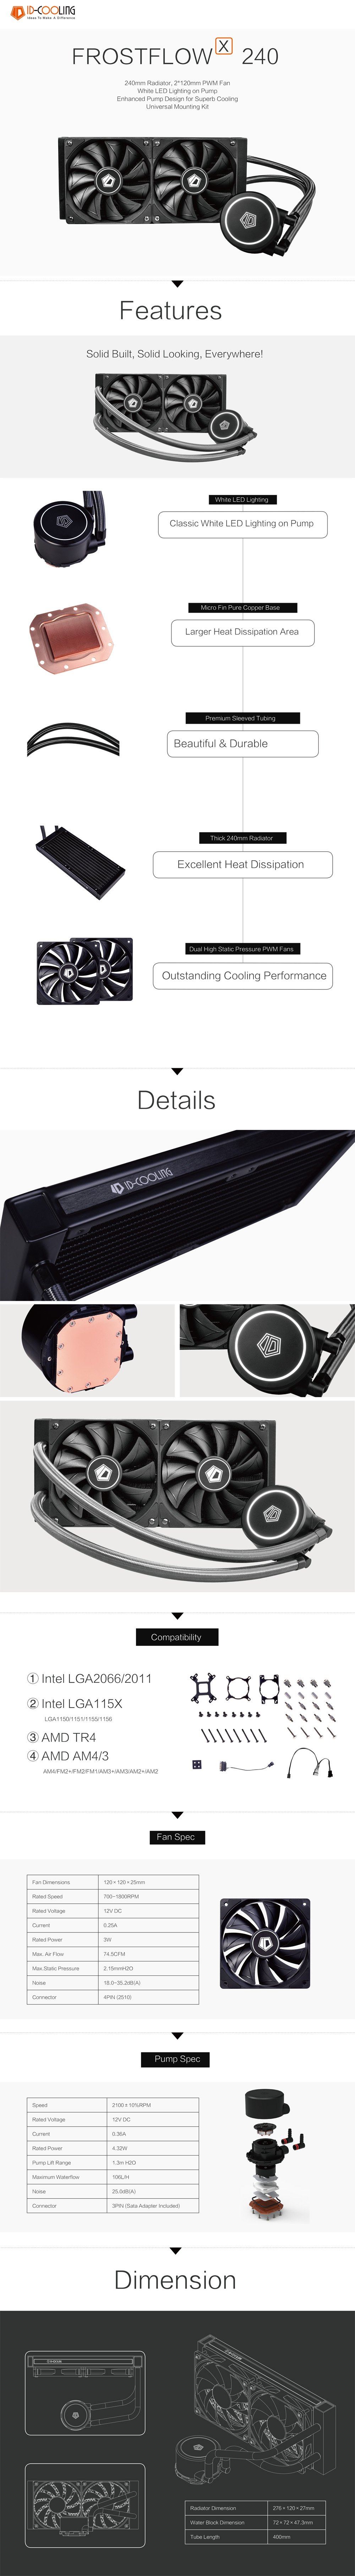 A large marketing image providing additional information about the product ID-COOLING FrostFlow X 240 White LED AIO CPU Liquid Cooler - Additional alt info not provided